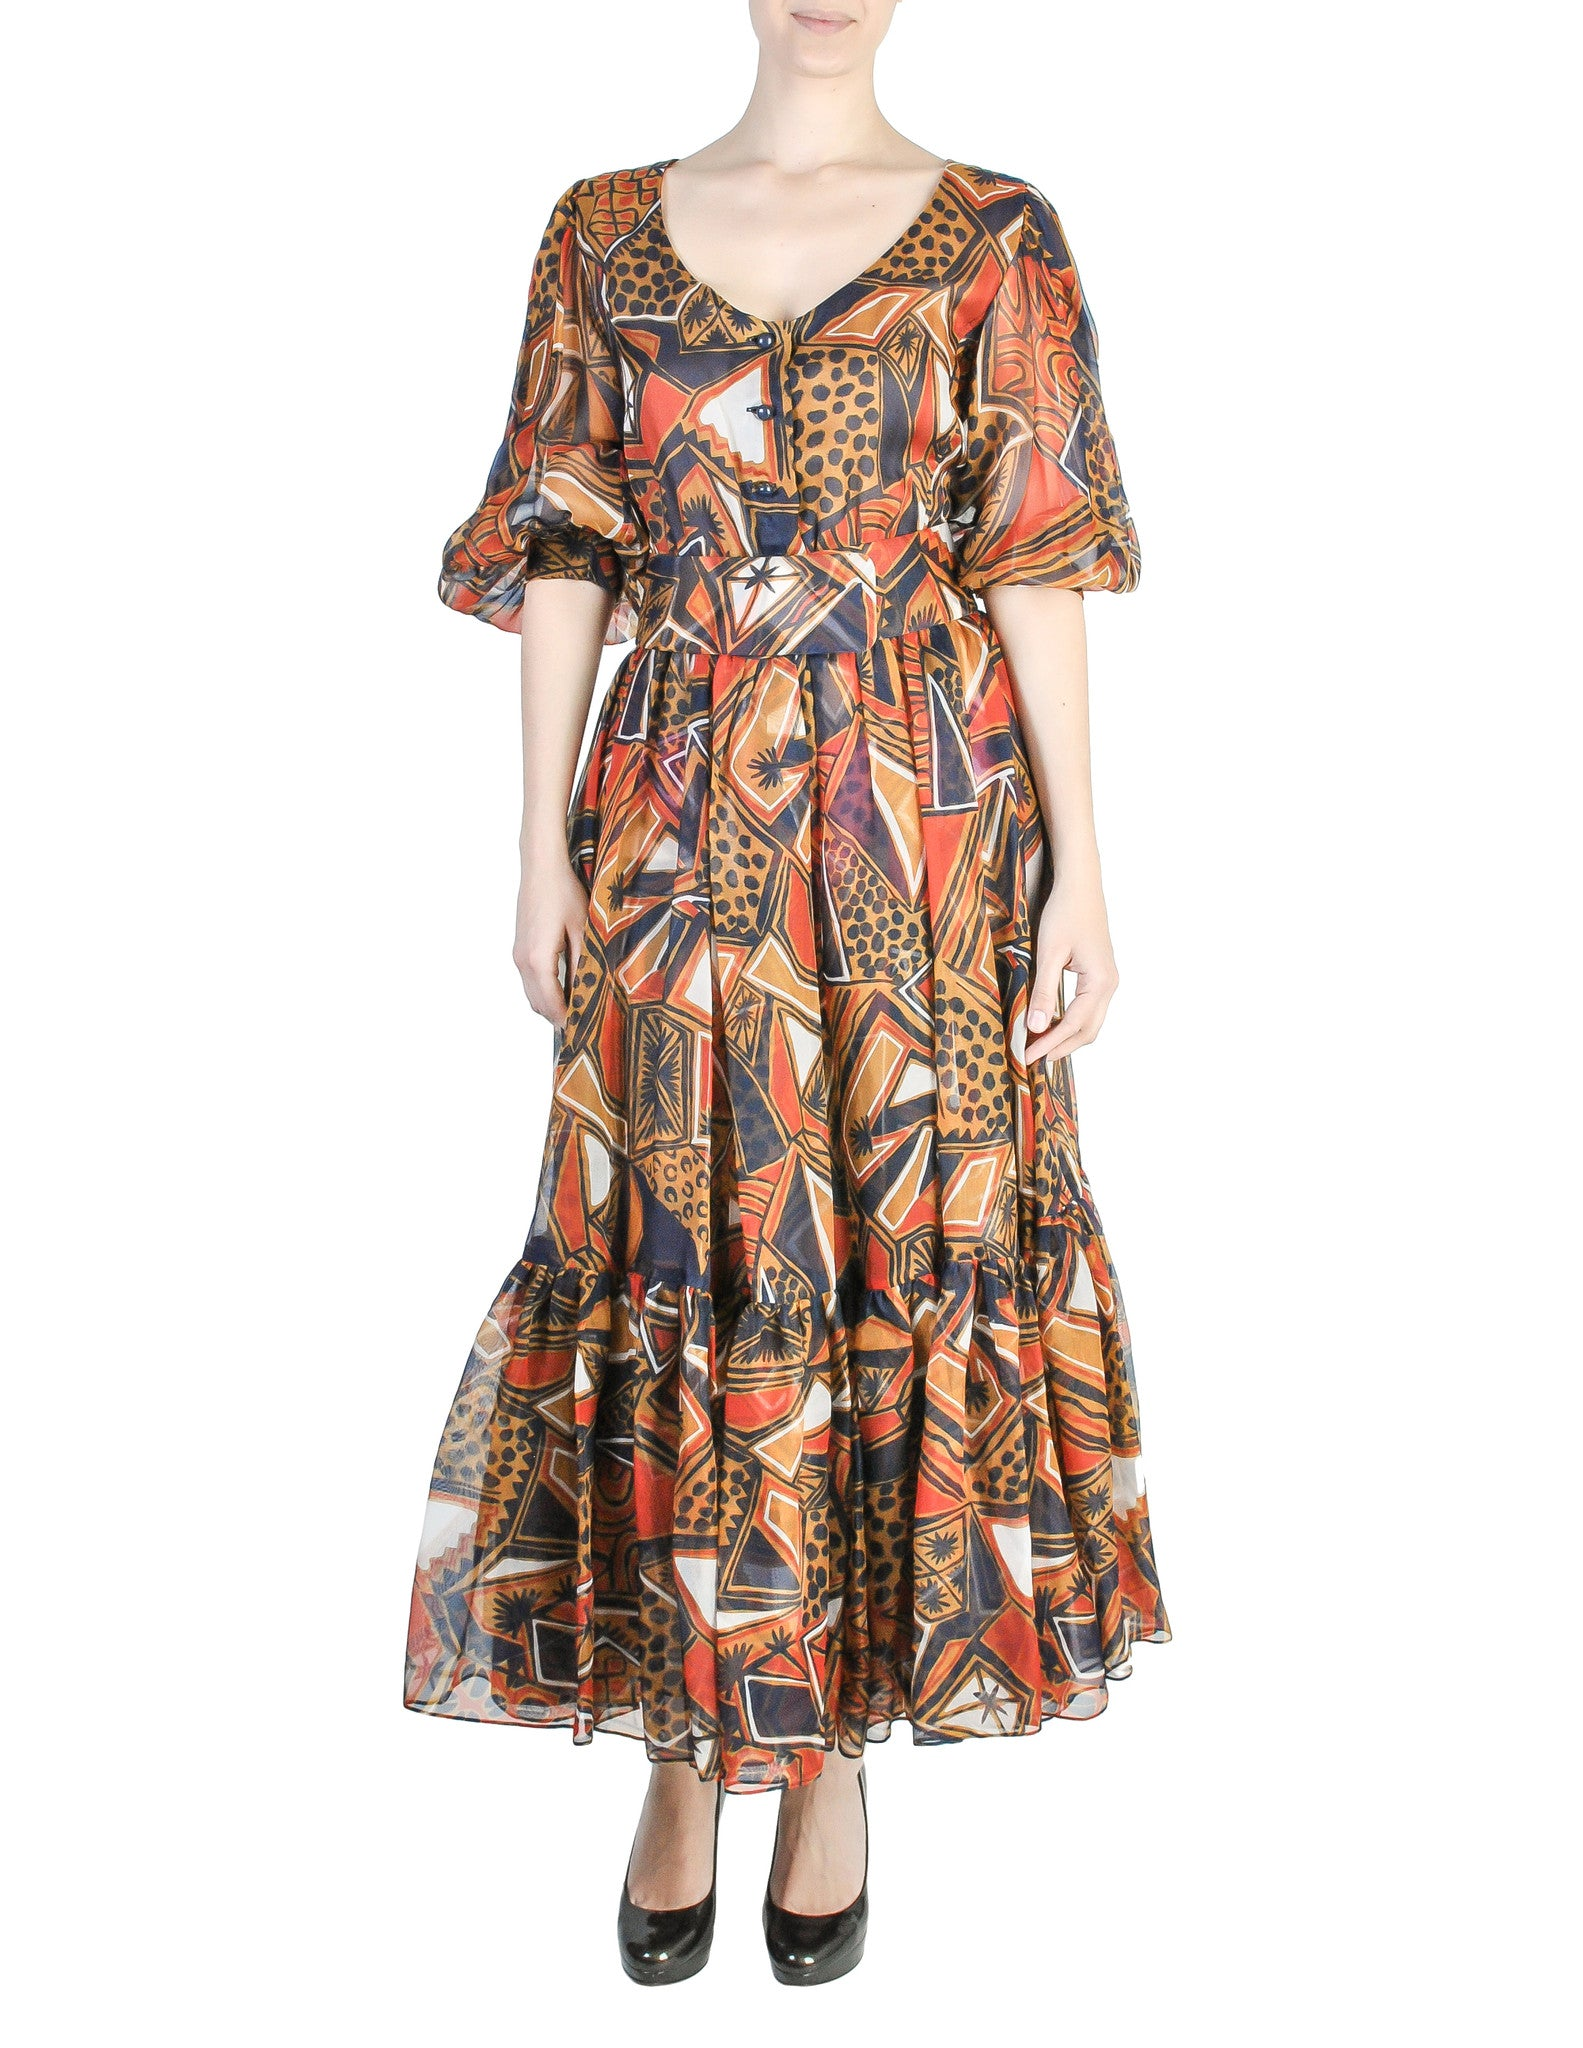 Saint Laurent Vintage Tribal Print Chiffon Maxi Dress - Amarcord Vintage Fashion  - 1